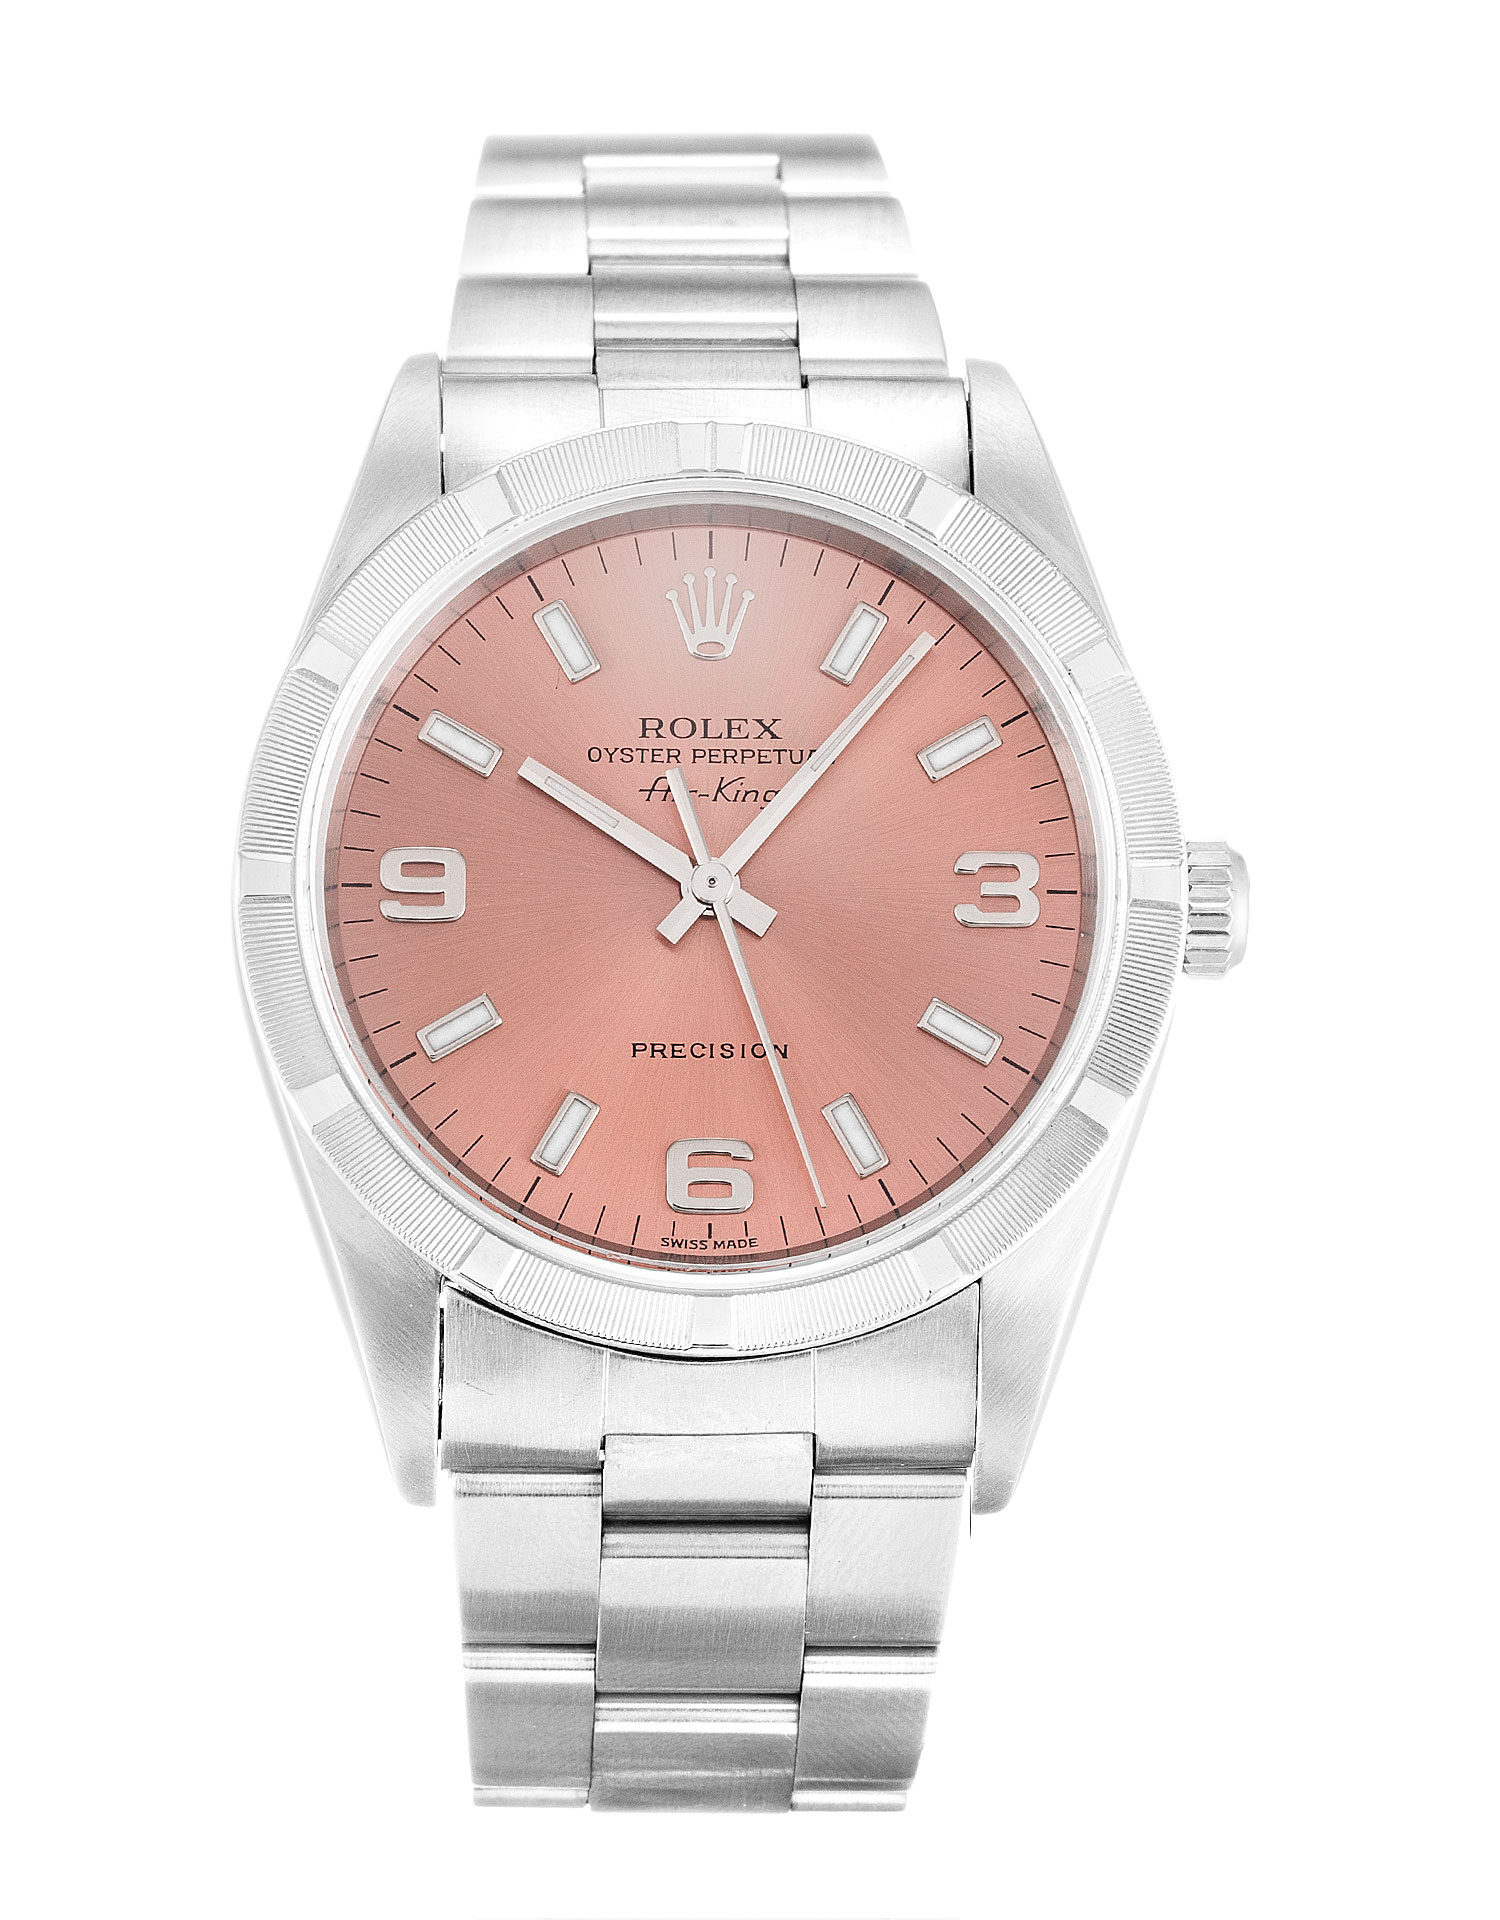 Rolex Air-king 14010m Unisex 34 Mm Steel Case Automatic Movement – iapac.to